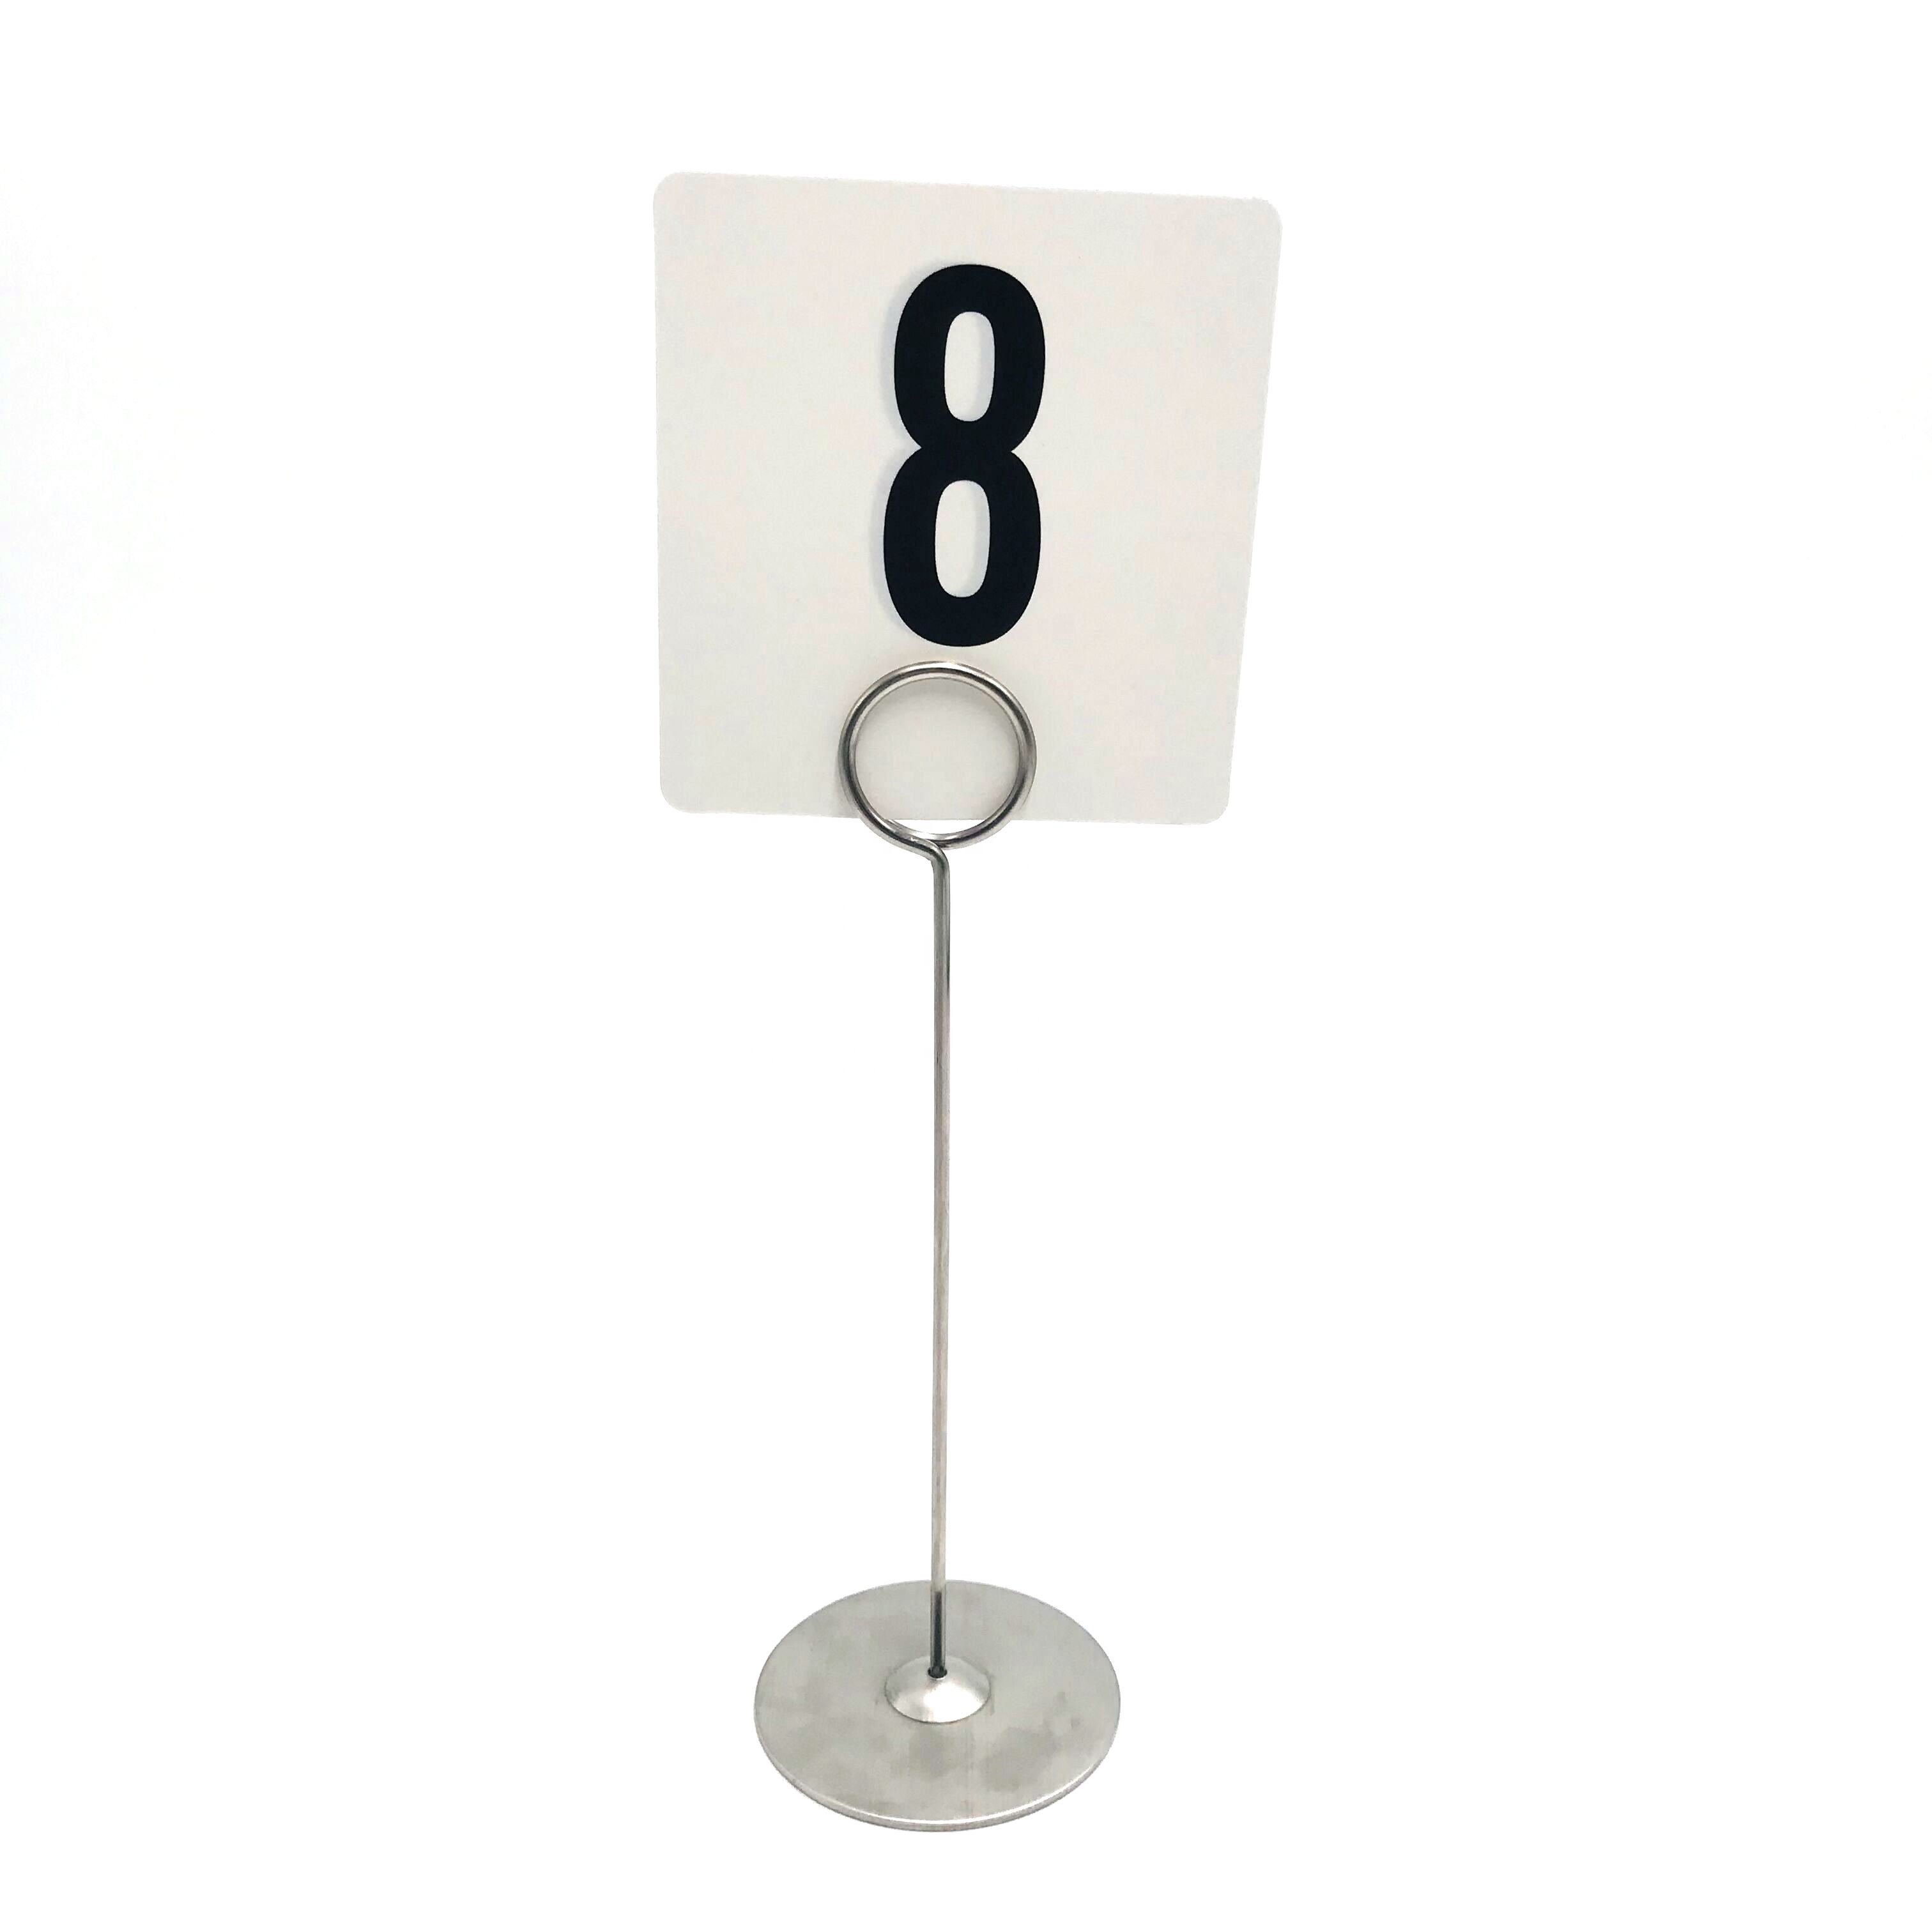 Stainless Steel Name Card Pop Menu Table Number Sign Place Card Holder Wedding Metal Table Floor Welcome Display Sign Stand